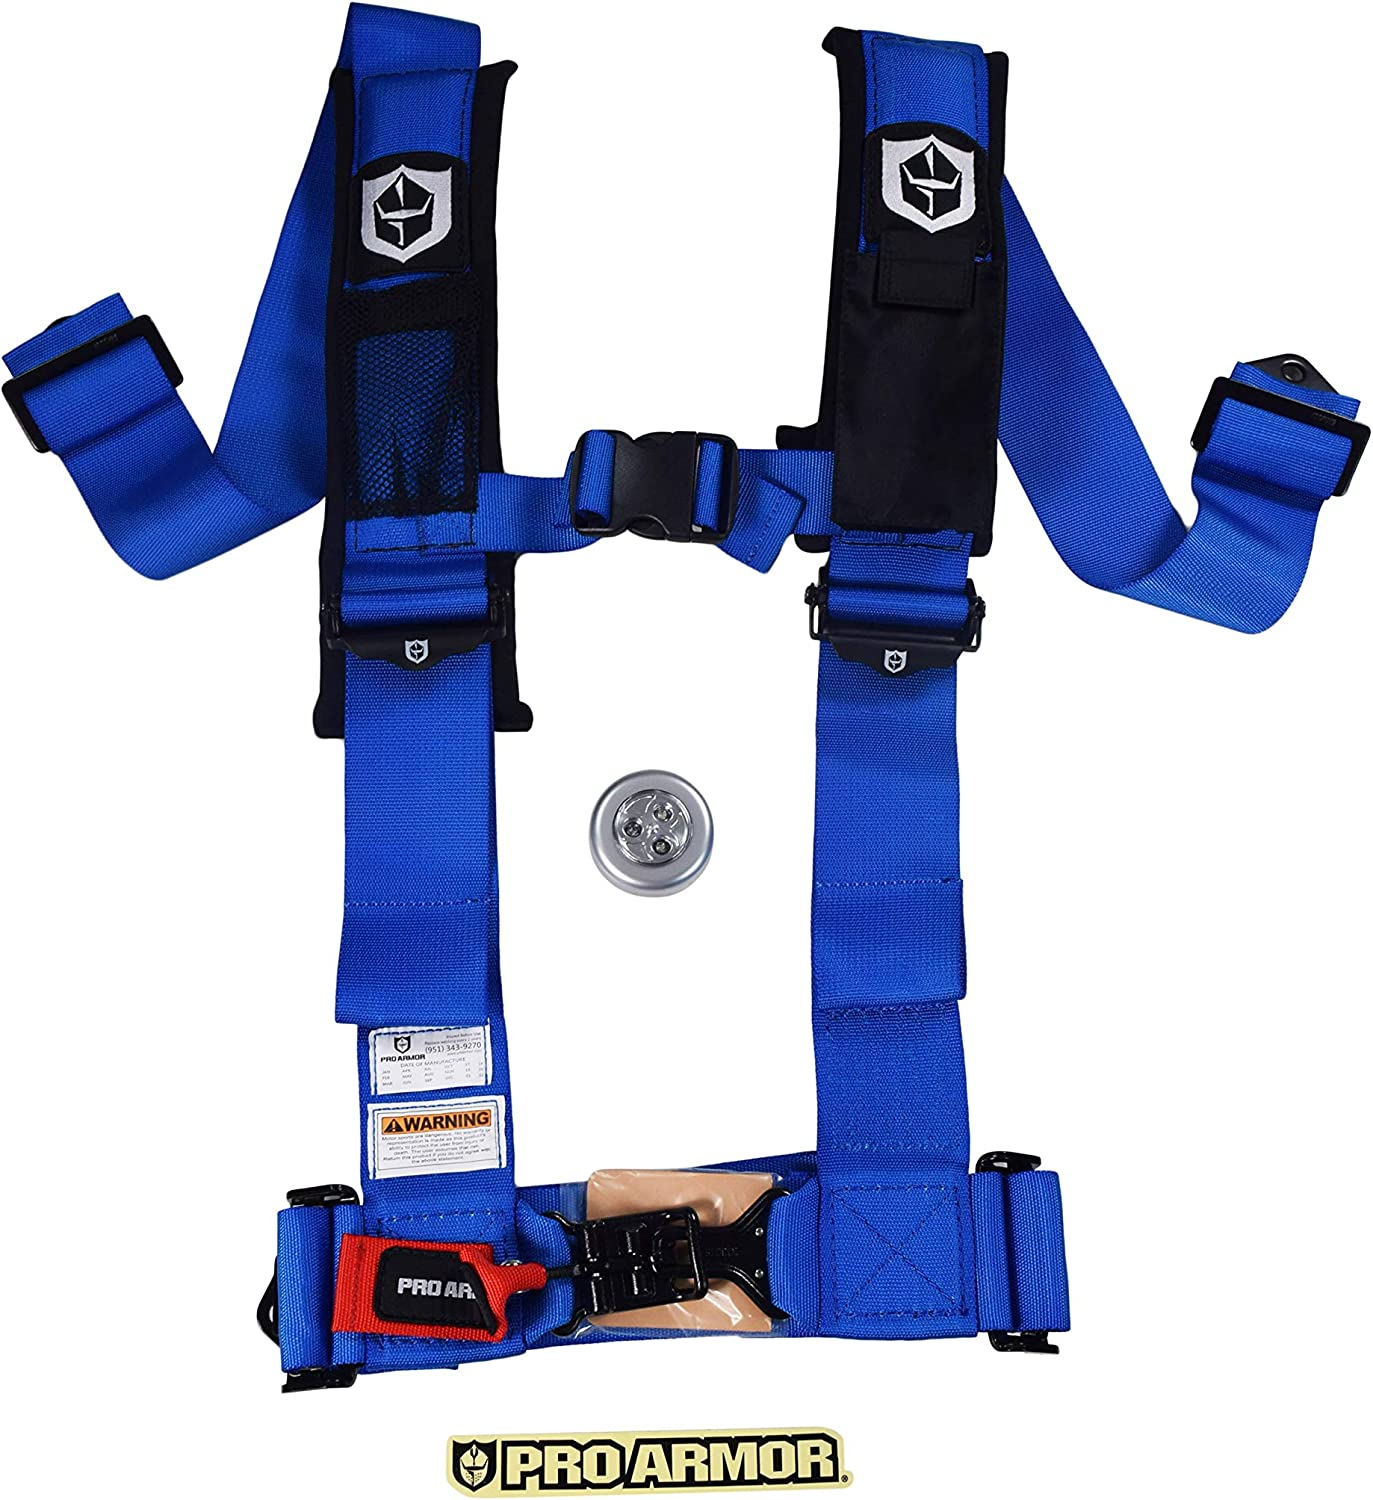 Voodoo Blue Pro Armor A114230 4 Point 3 Universal UTV Off-Road Harness with Sewn in Pads Phone Pouch Light